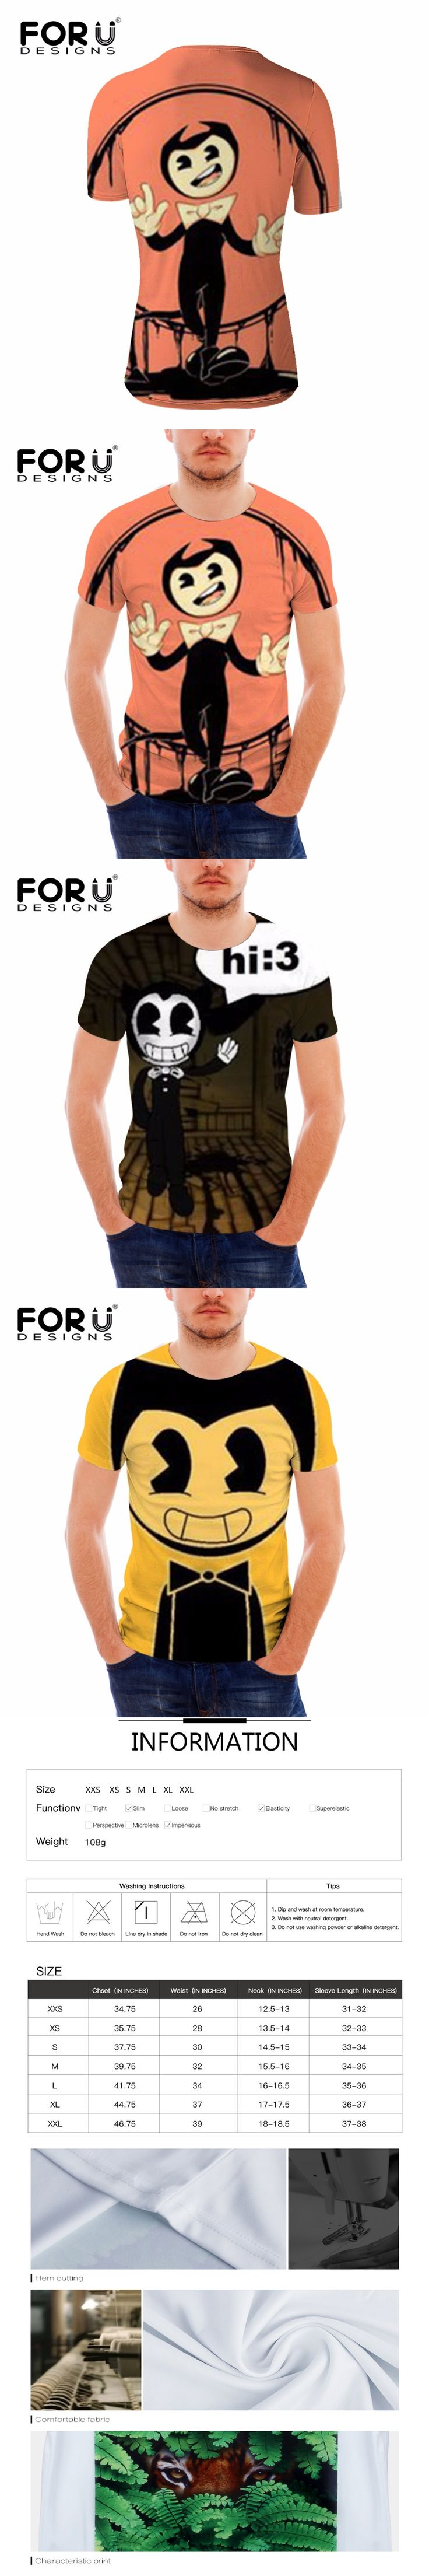 FORUDESIGNS Man's Short T-Shirt Male O-Neck Short sleeve tshirt man Cool dean ambrose bendy and the ink machine Casual t-shirt L